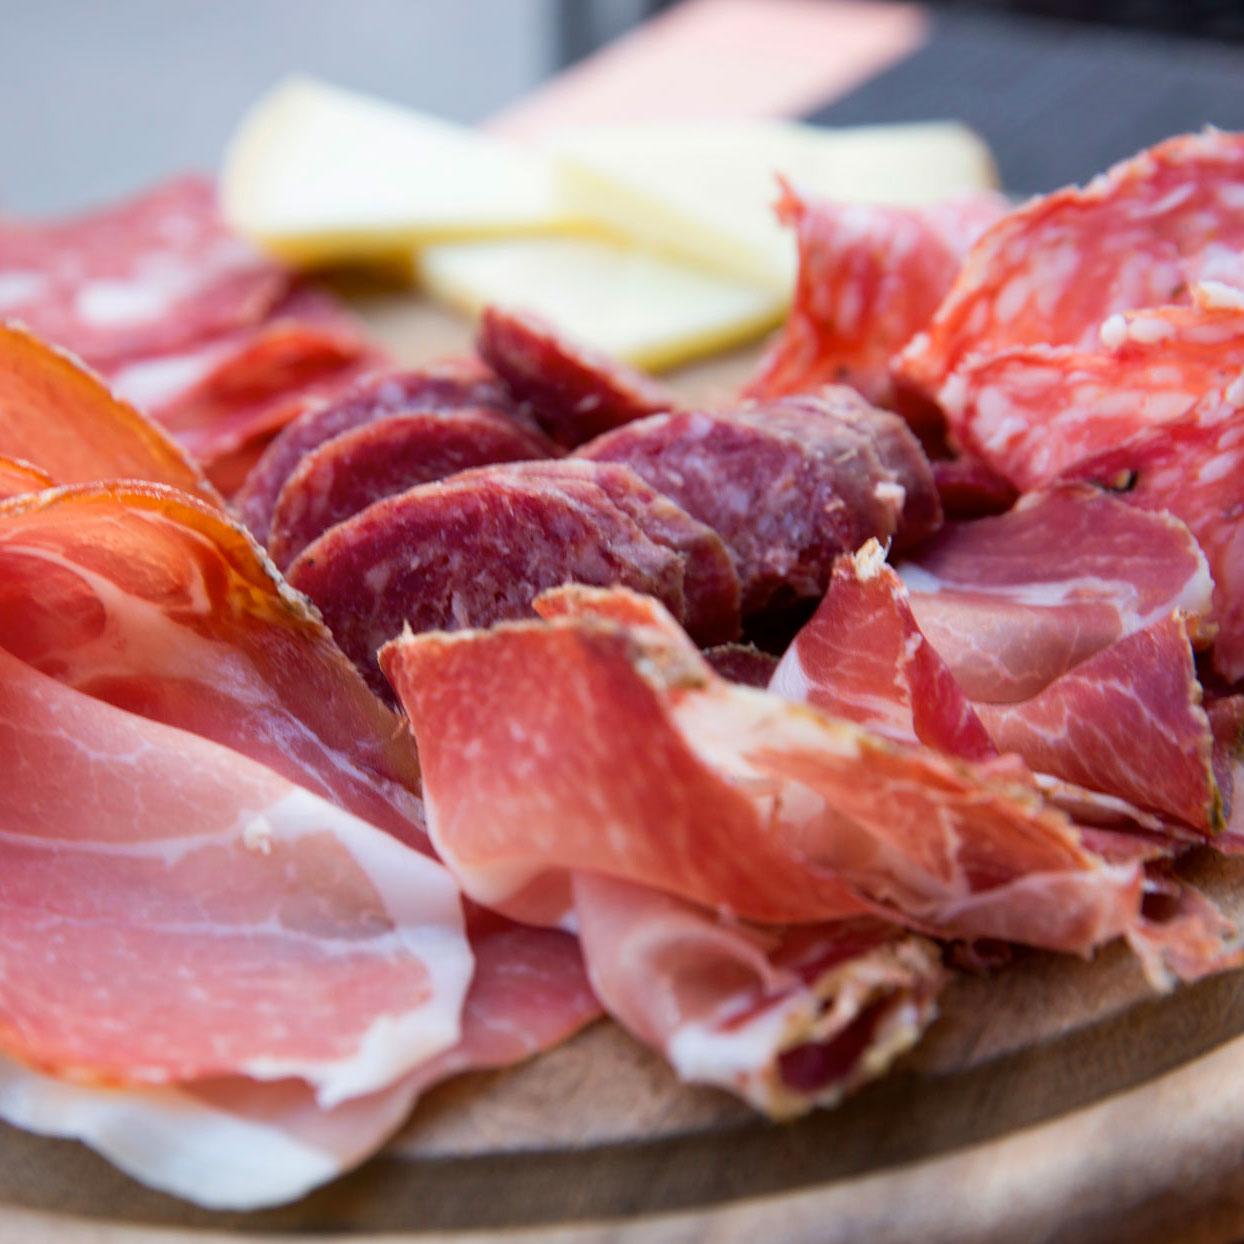 CDC Warns of Listeria Outbreak in Deli Meats Responsible for 10 Hospitalizations and One Death